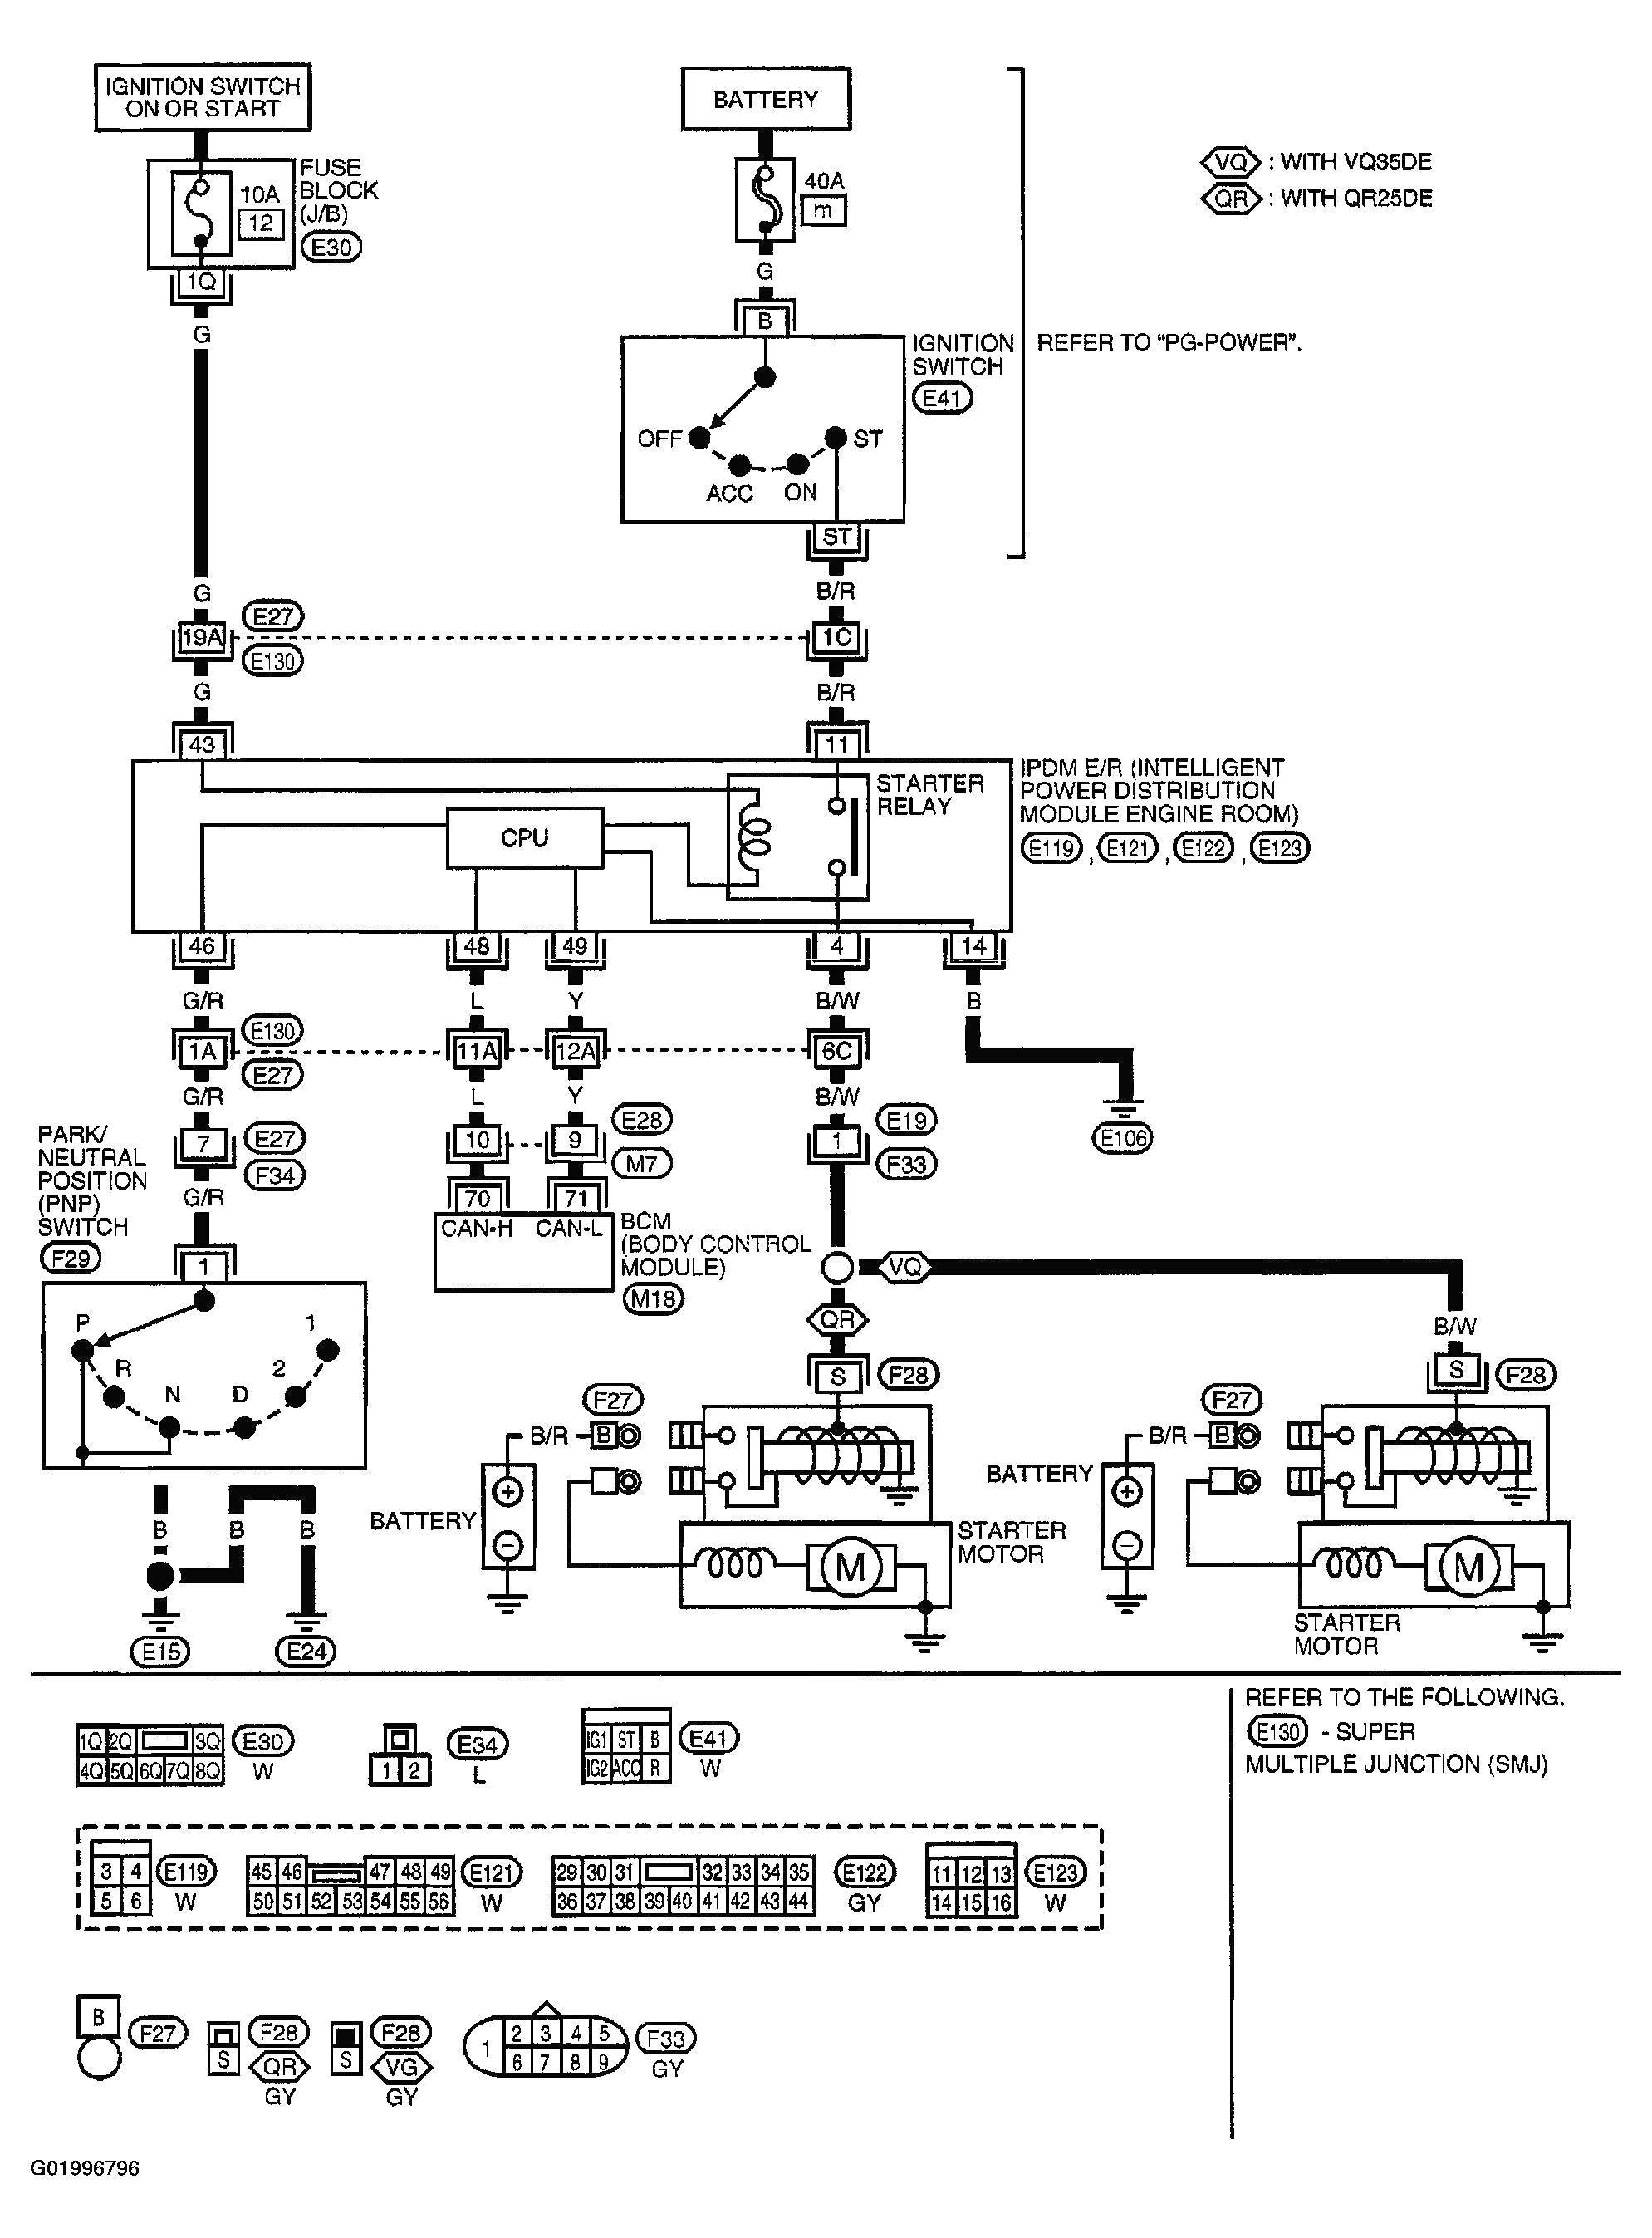 2006 Altima Engine Fuse Box Diagram Wiring Library